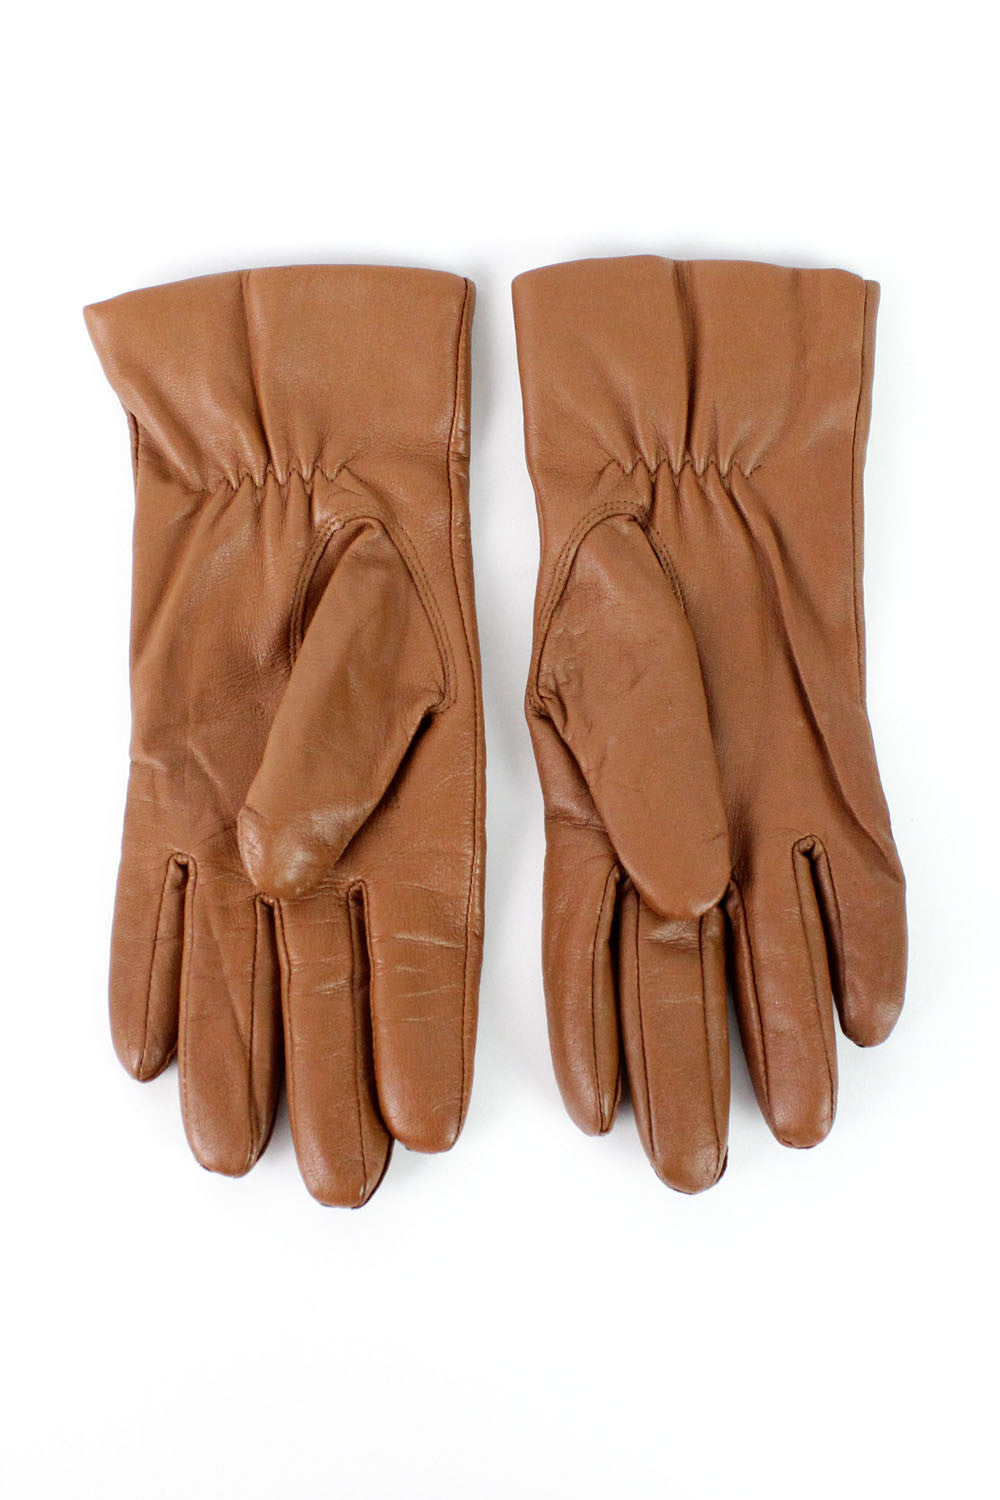 Etienne Aigner Chestnut Leather Gloves S